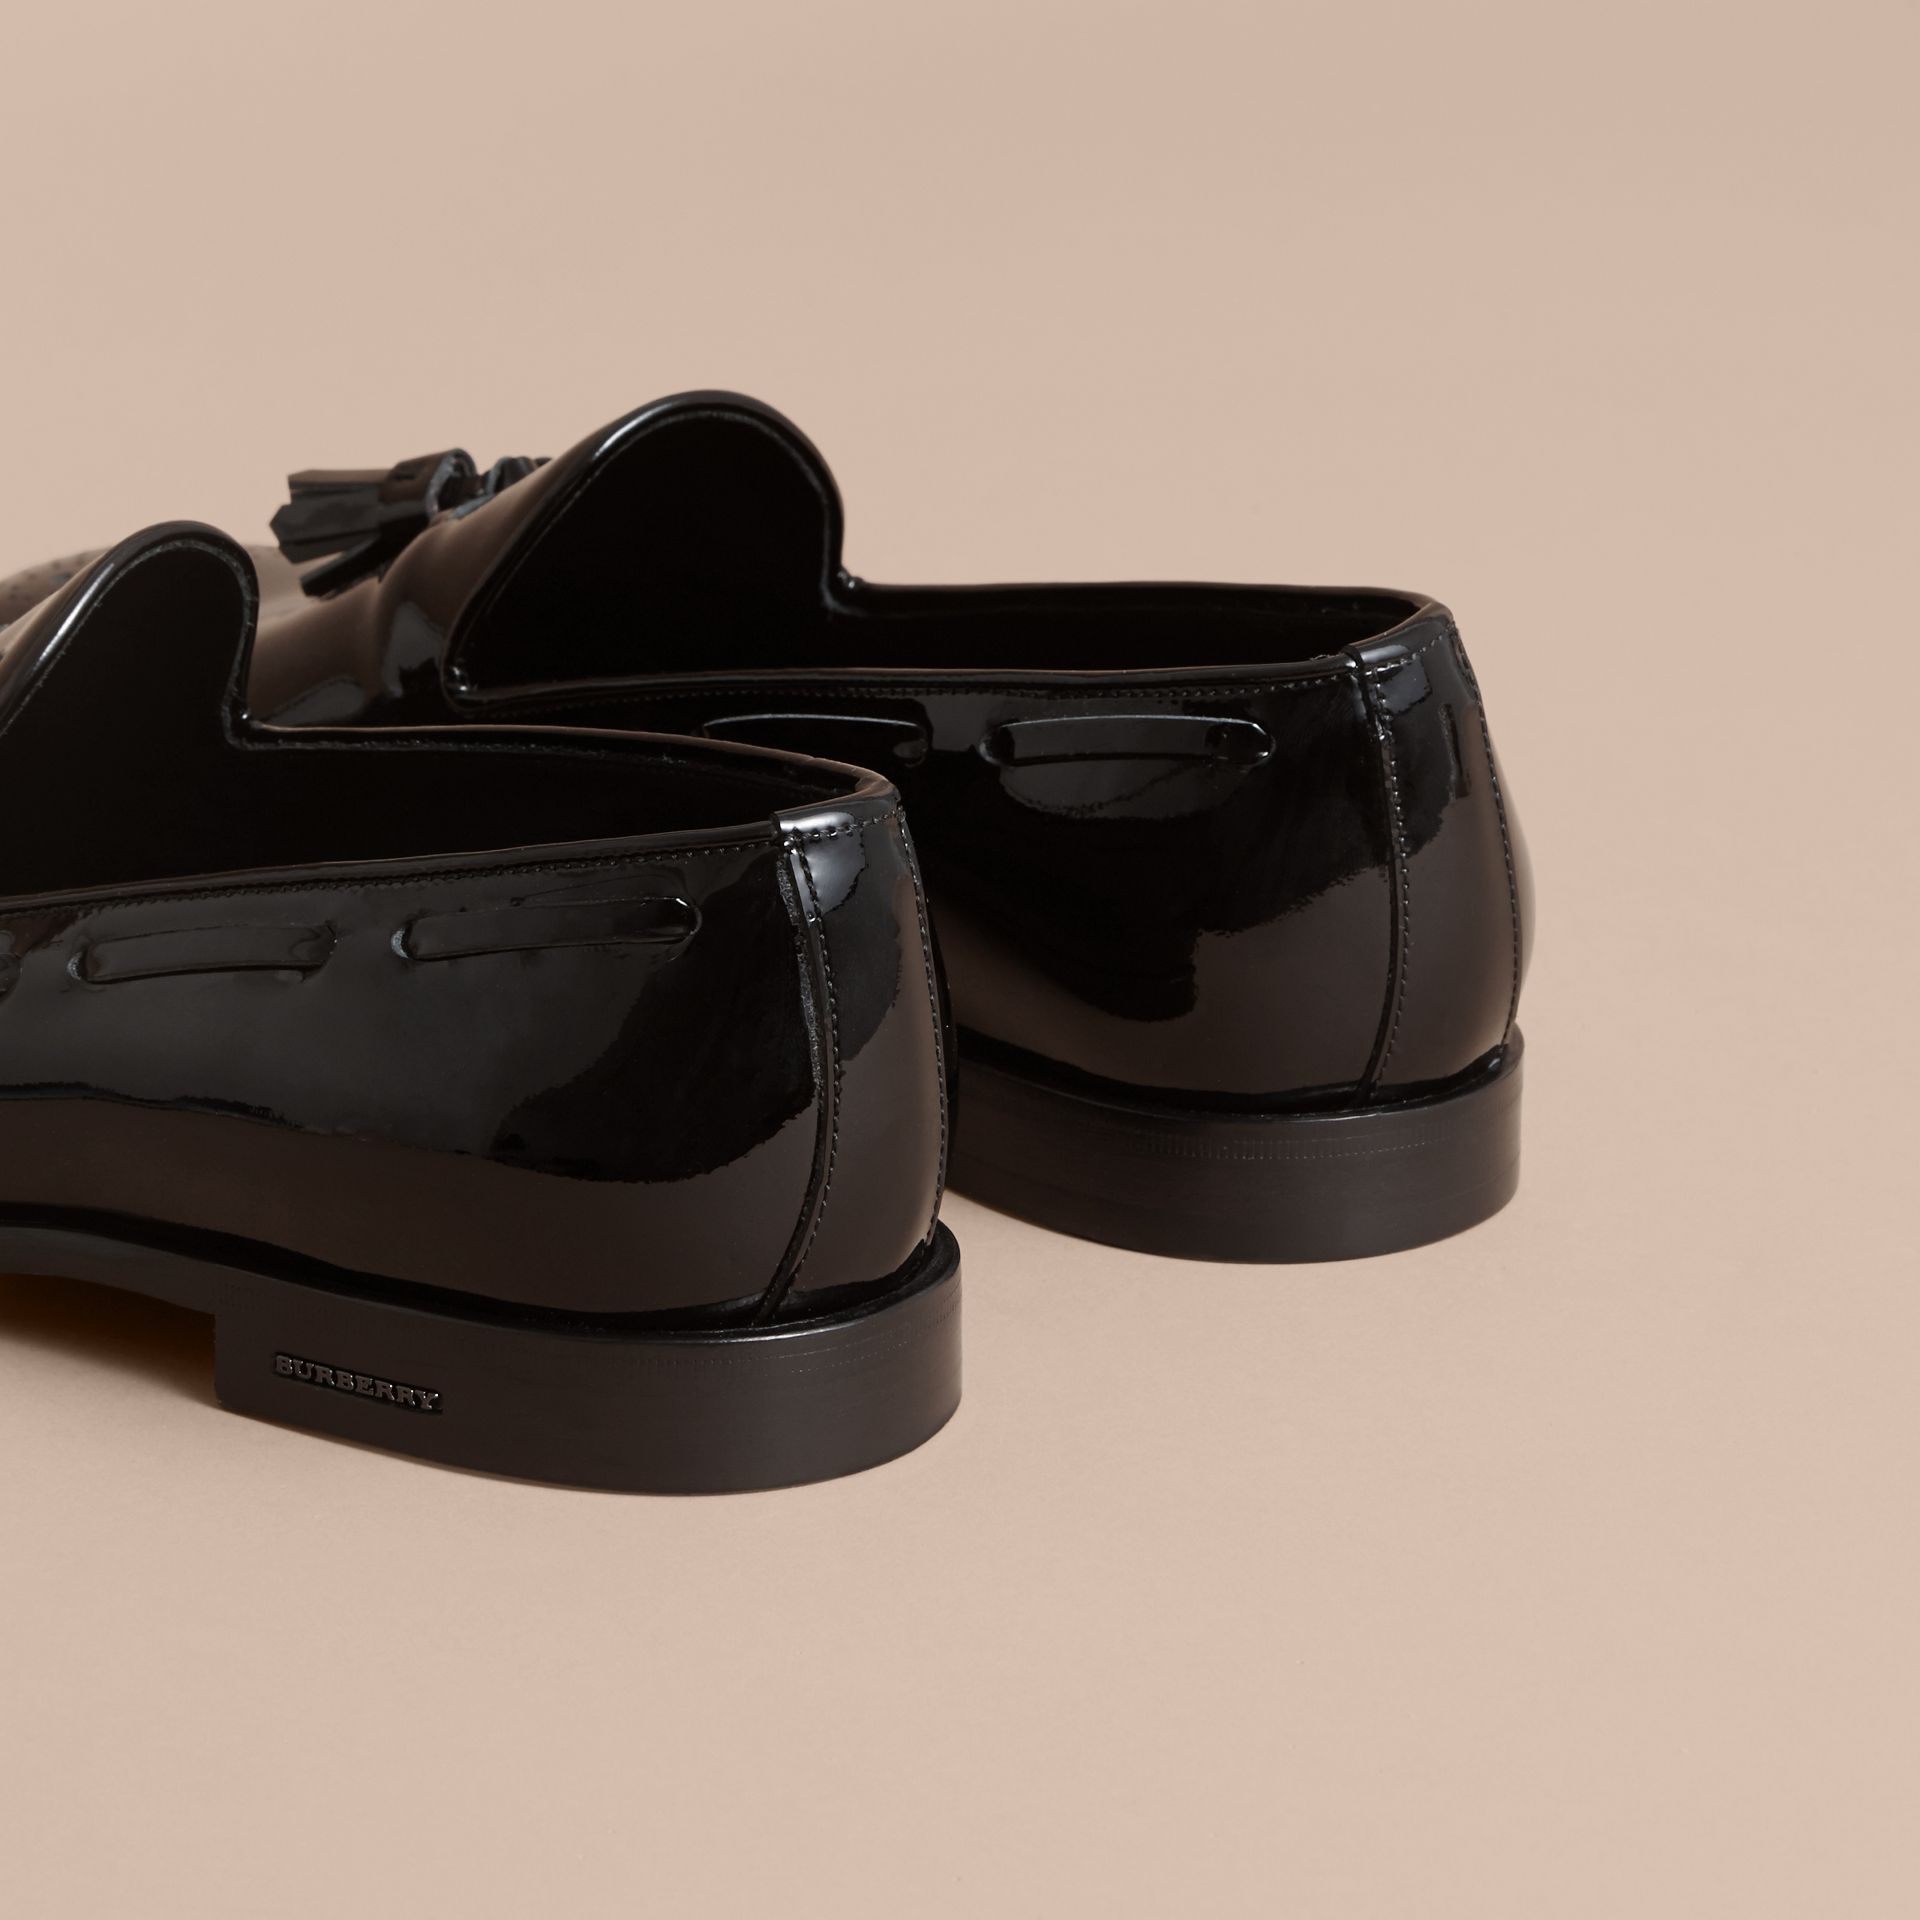 Tasselled Patent Leather Loafers in Black - Men | Burberry Canada - gallery image 3